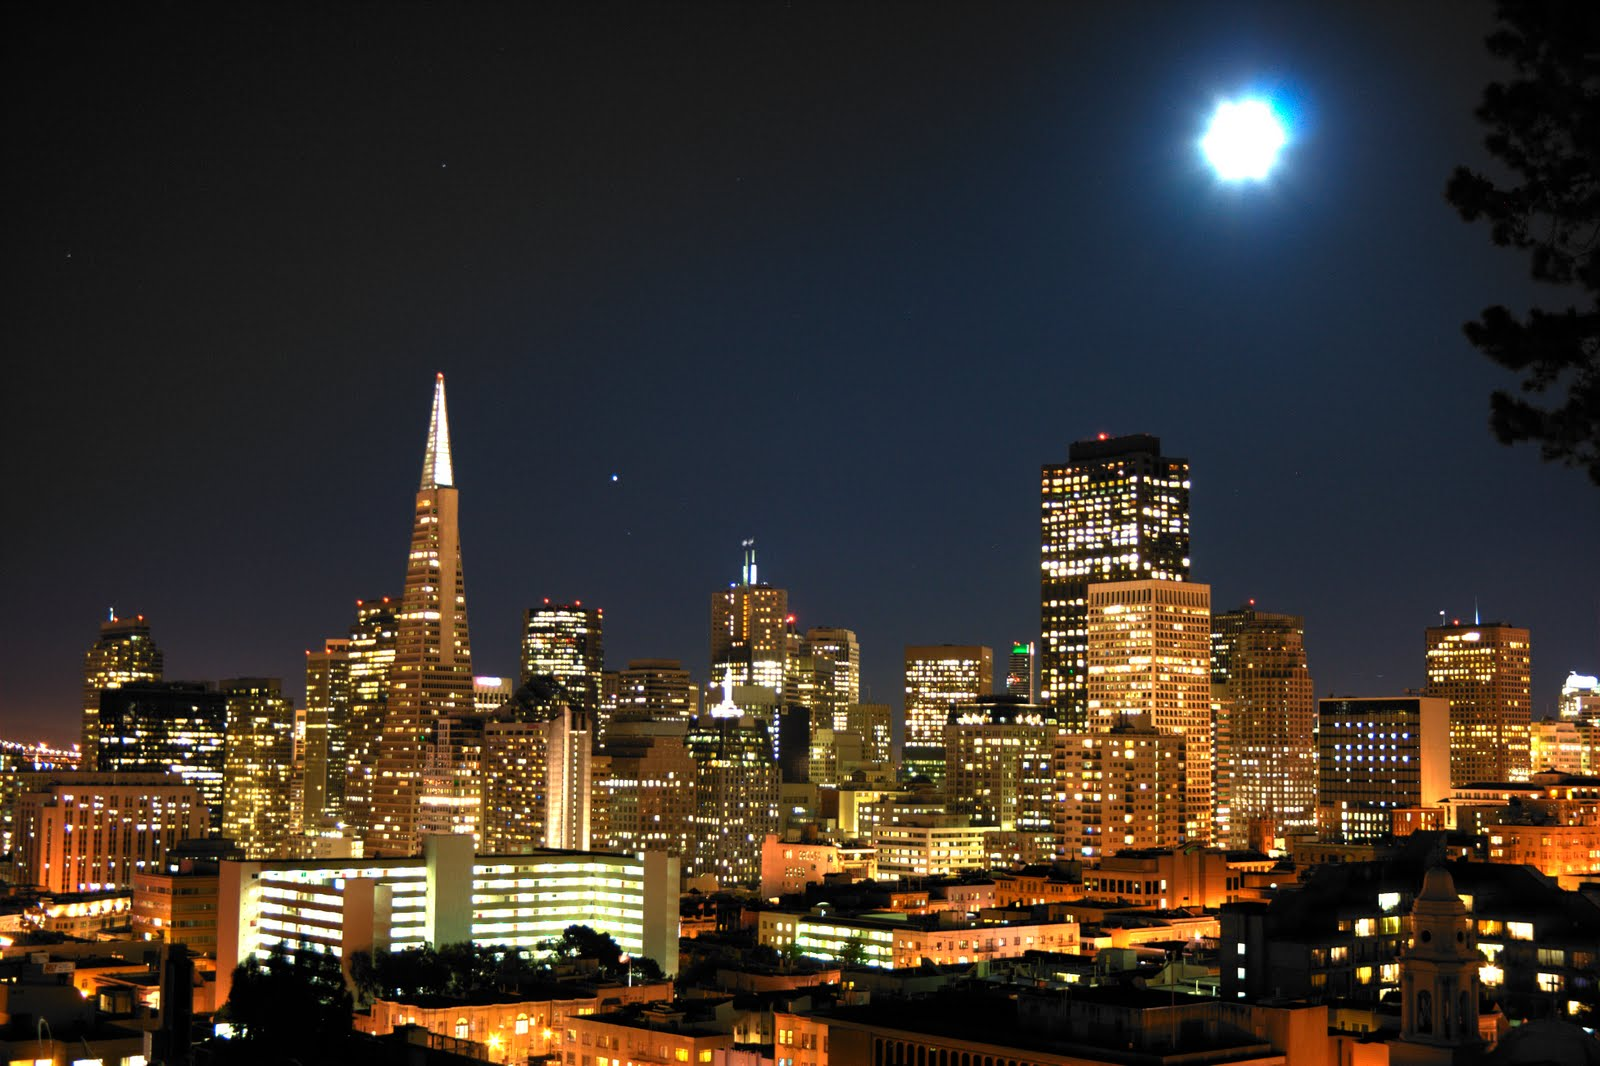 San Francisco Photo Of The Day City Lights